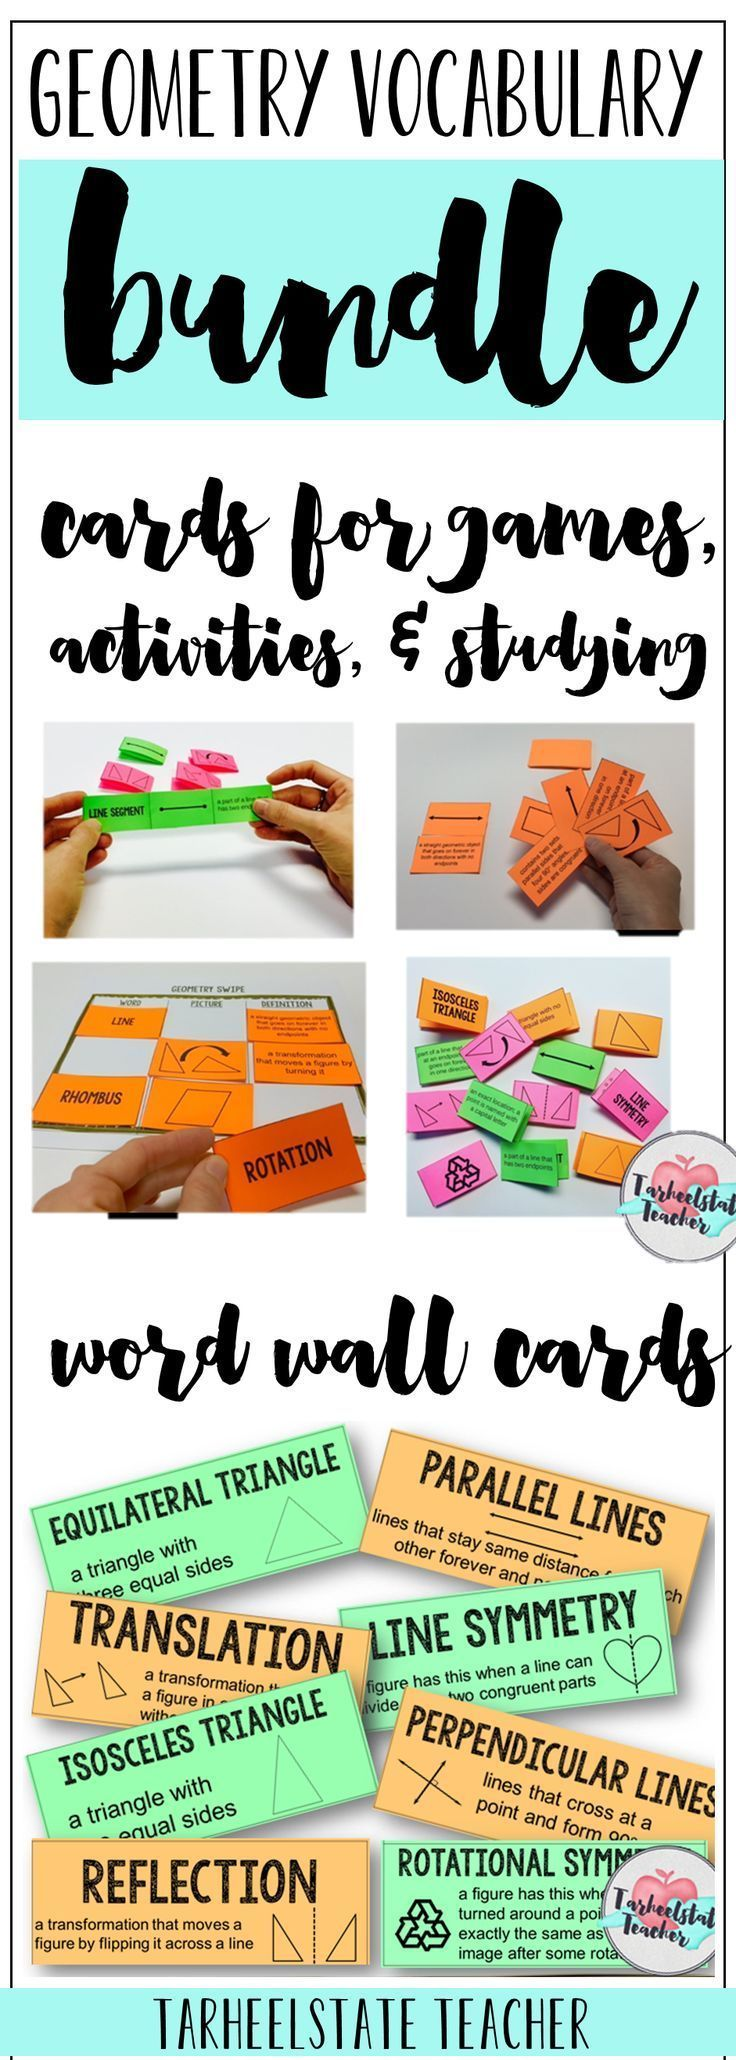 3rd grade, 4th grade, and 5th grade teachers, you are all set to help your students master geometry vocabulary with these geometry activities, games, study slips (study strategy), and a word wall for your classroom. My elementary students LOVE competing in the ultimate geometry challenge as a team to learn their triangle, quadrilateral, angles, lines, and other vocabulary words. All the details are inside the resource!